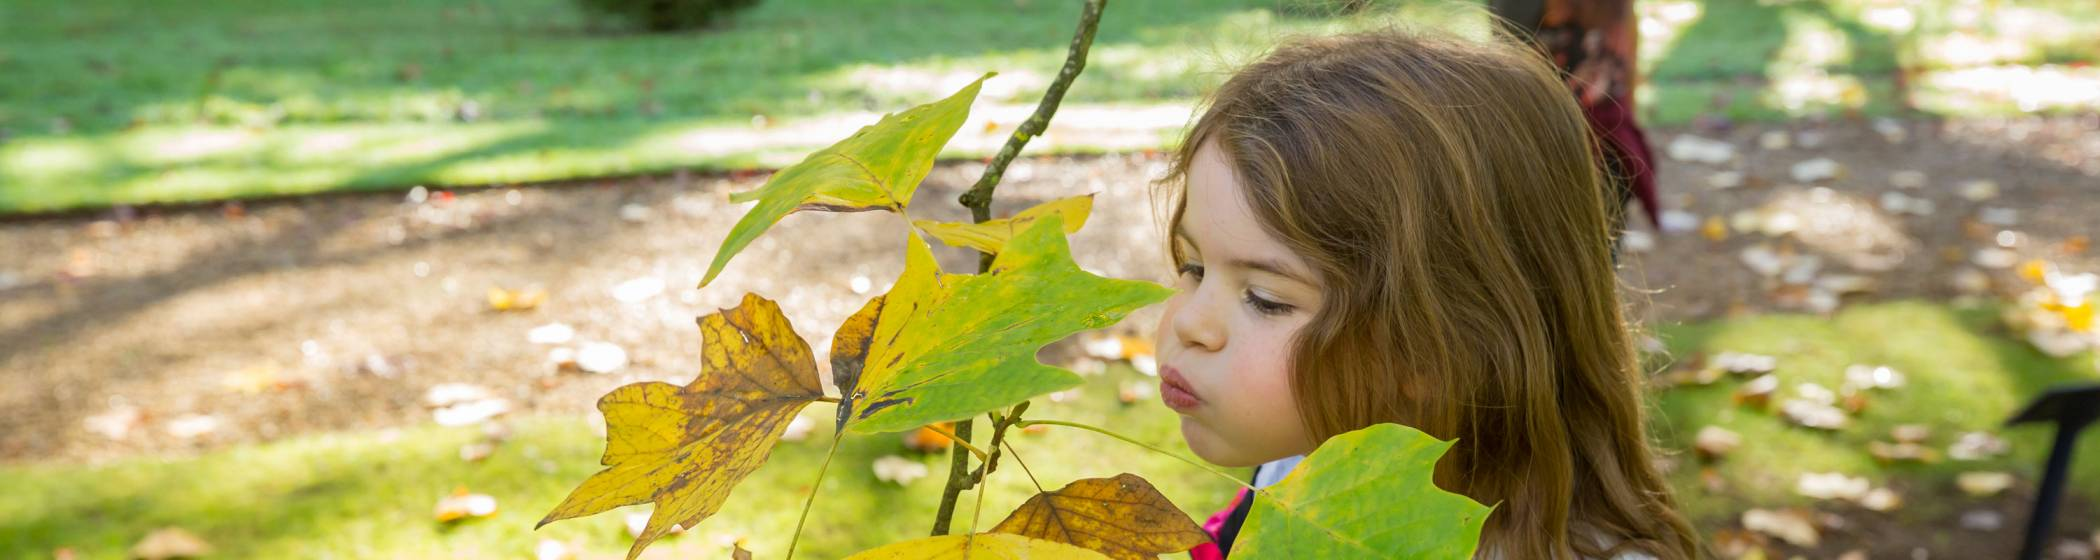 Girl blowing on leaf